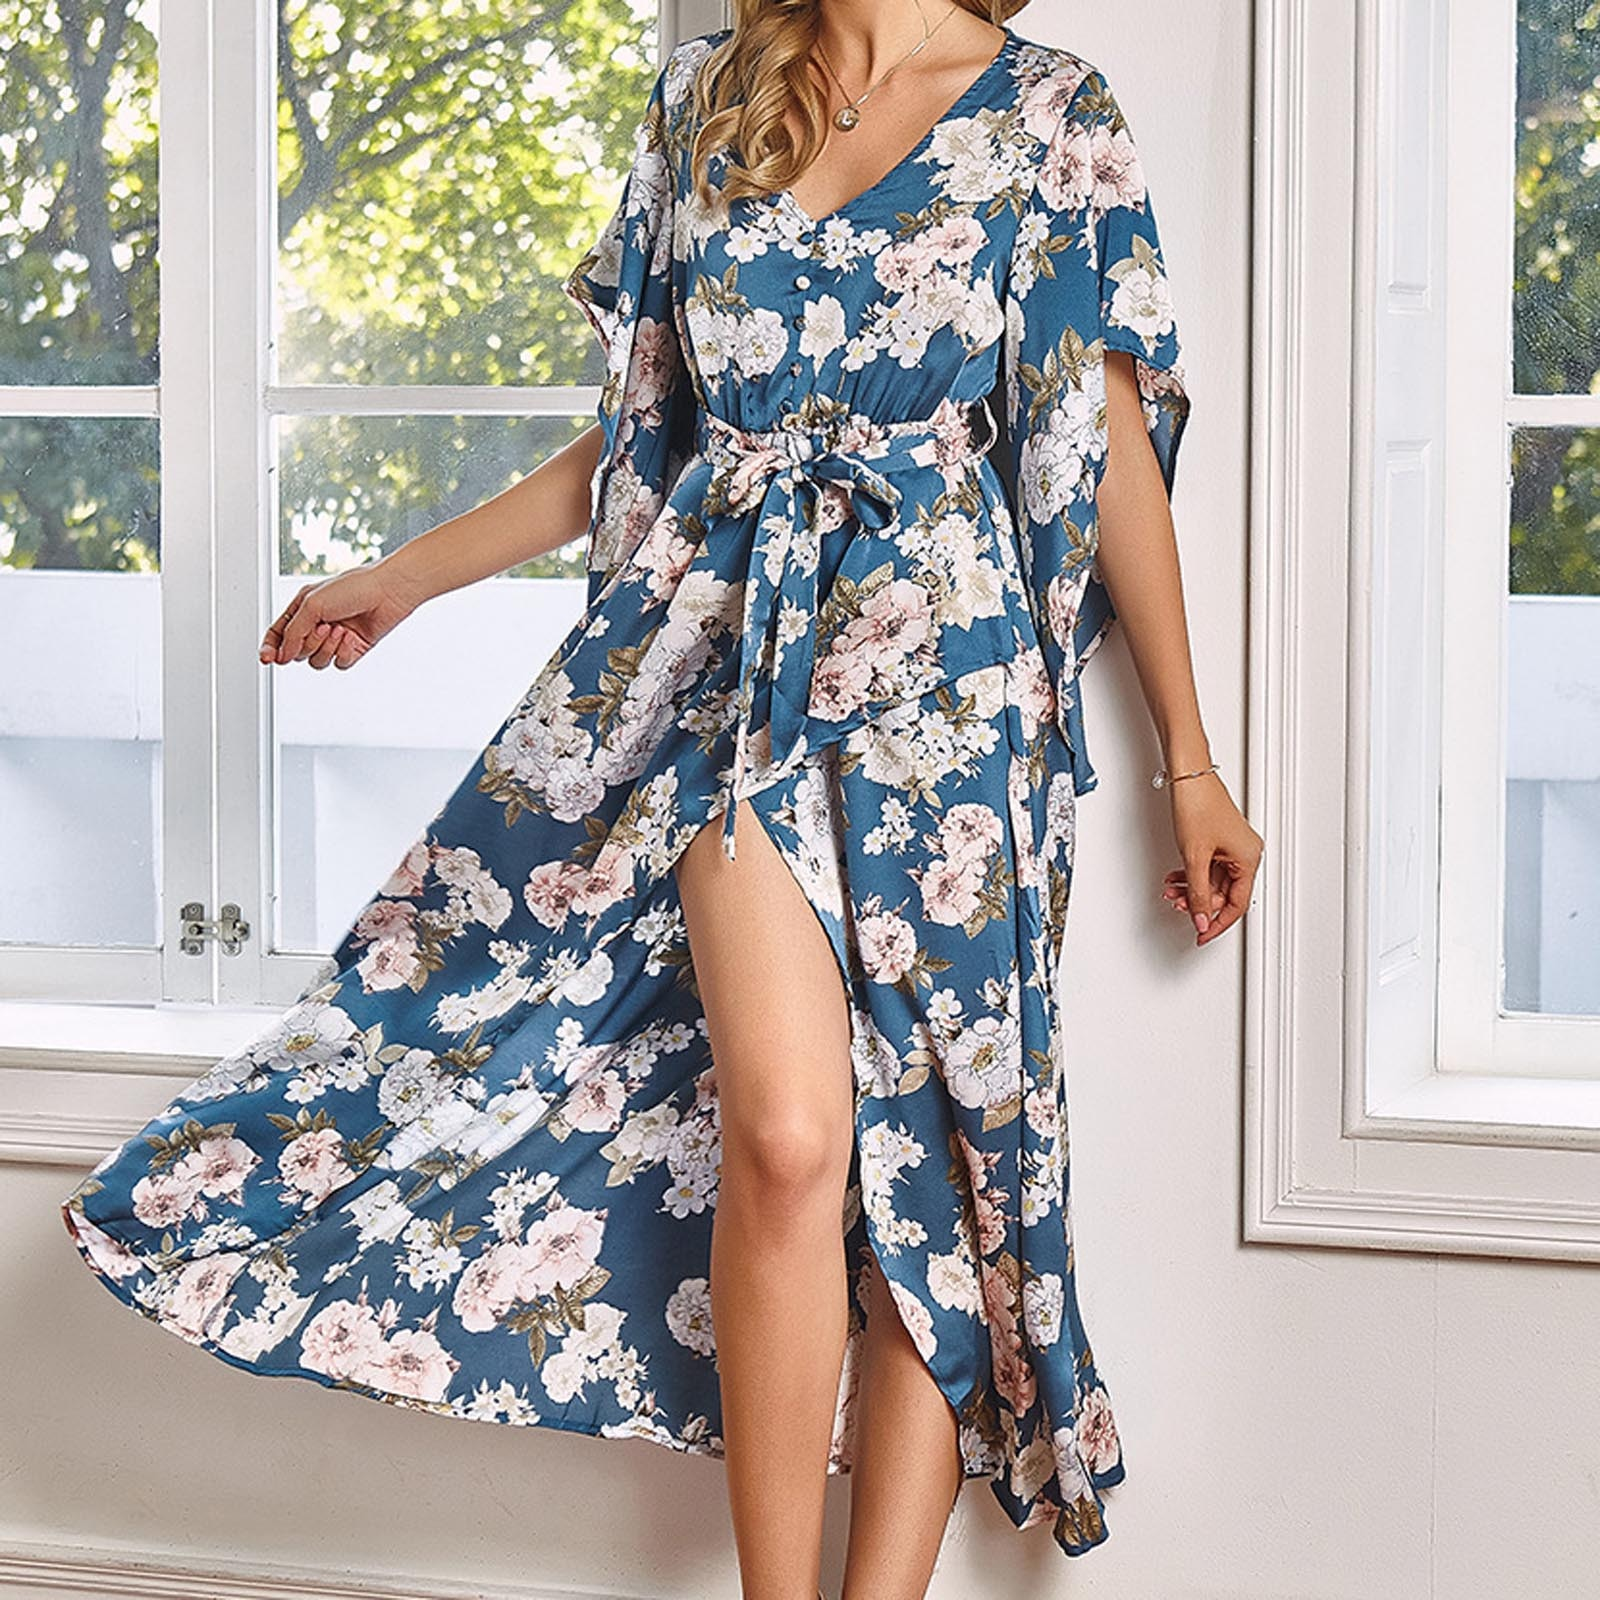 Sexy Long Dress Fashion Women Bridesmaid Wrap One-piece High Waist Long Maxi Dress Printing Floral V